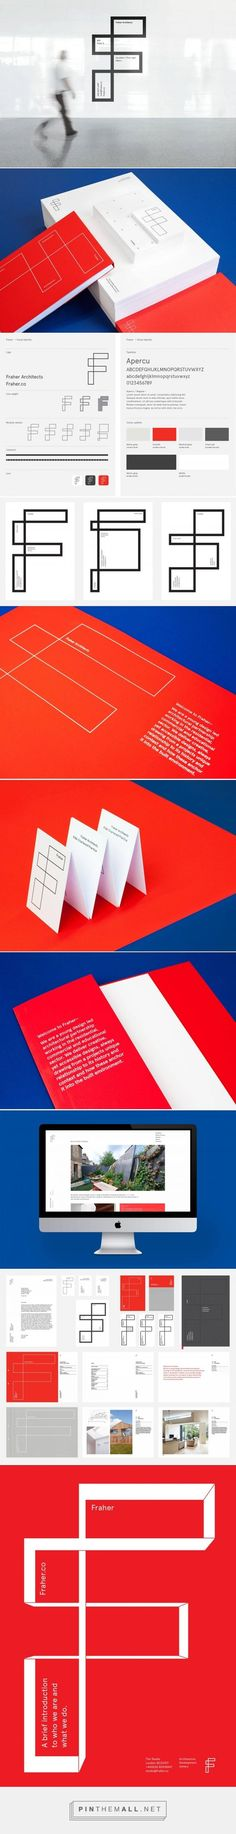 Fraher architects Visual identity system for London based Fraher architects. Our concept is based on the visual language of architecture. The logo is based on the plan view of the letter F. The intersecting compartments create a simple graphic device for containing text, images and texture. A vibrant red accent colour supports the minimal yet functional aesthetic. Applications include: suite of stationery, website, internal documents and presentation materials.: